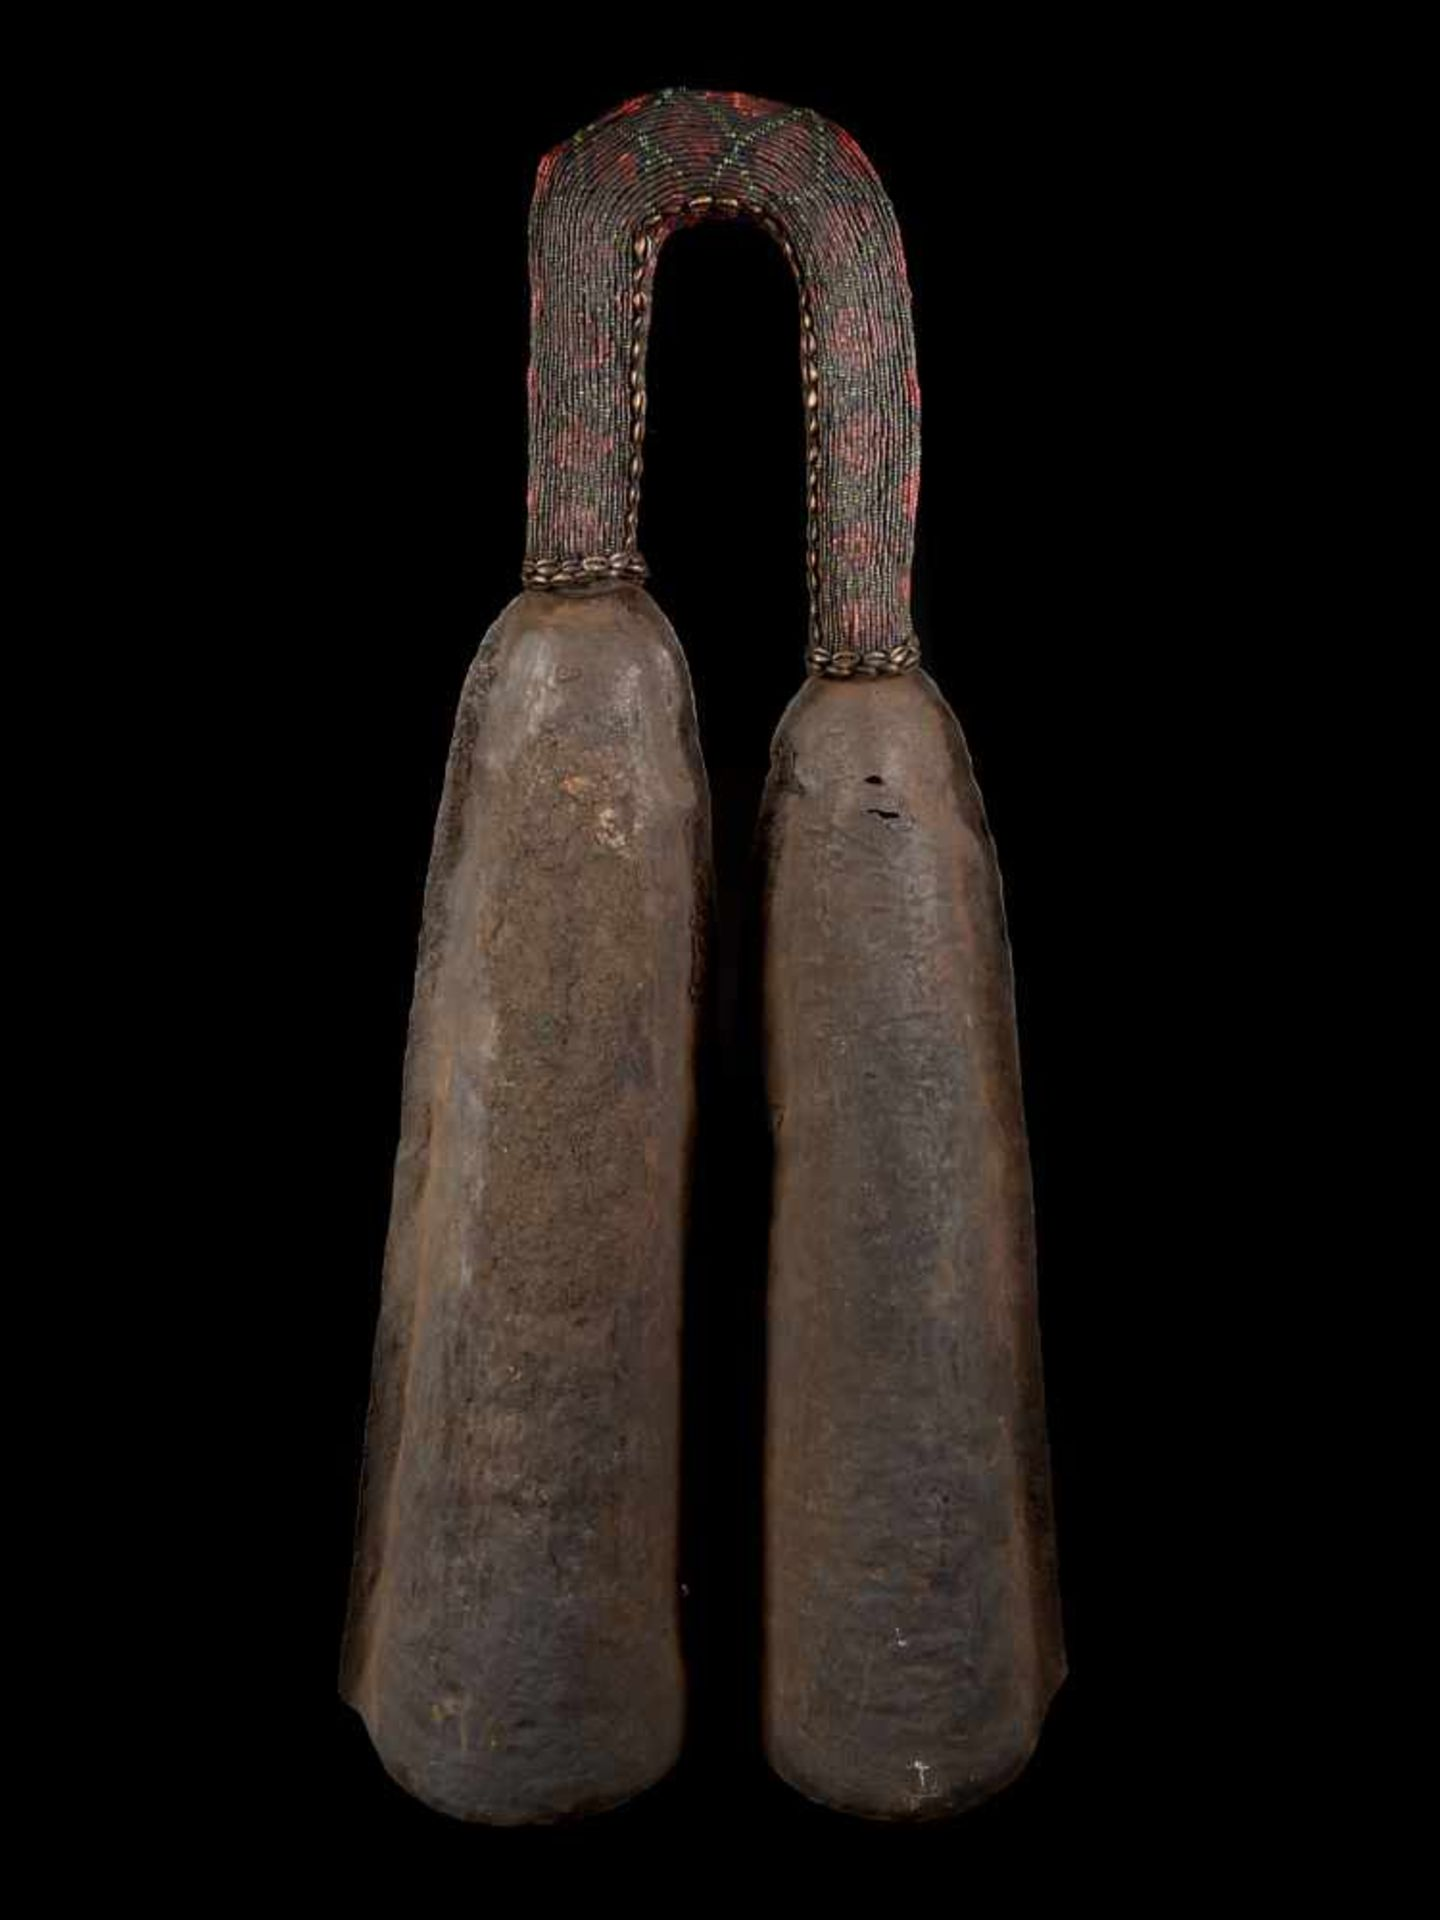 Ceremonial Double Gong With Beaded Handle - Tribal ArtThis ceremonial double gong consists of two